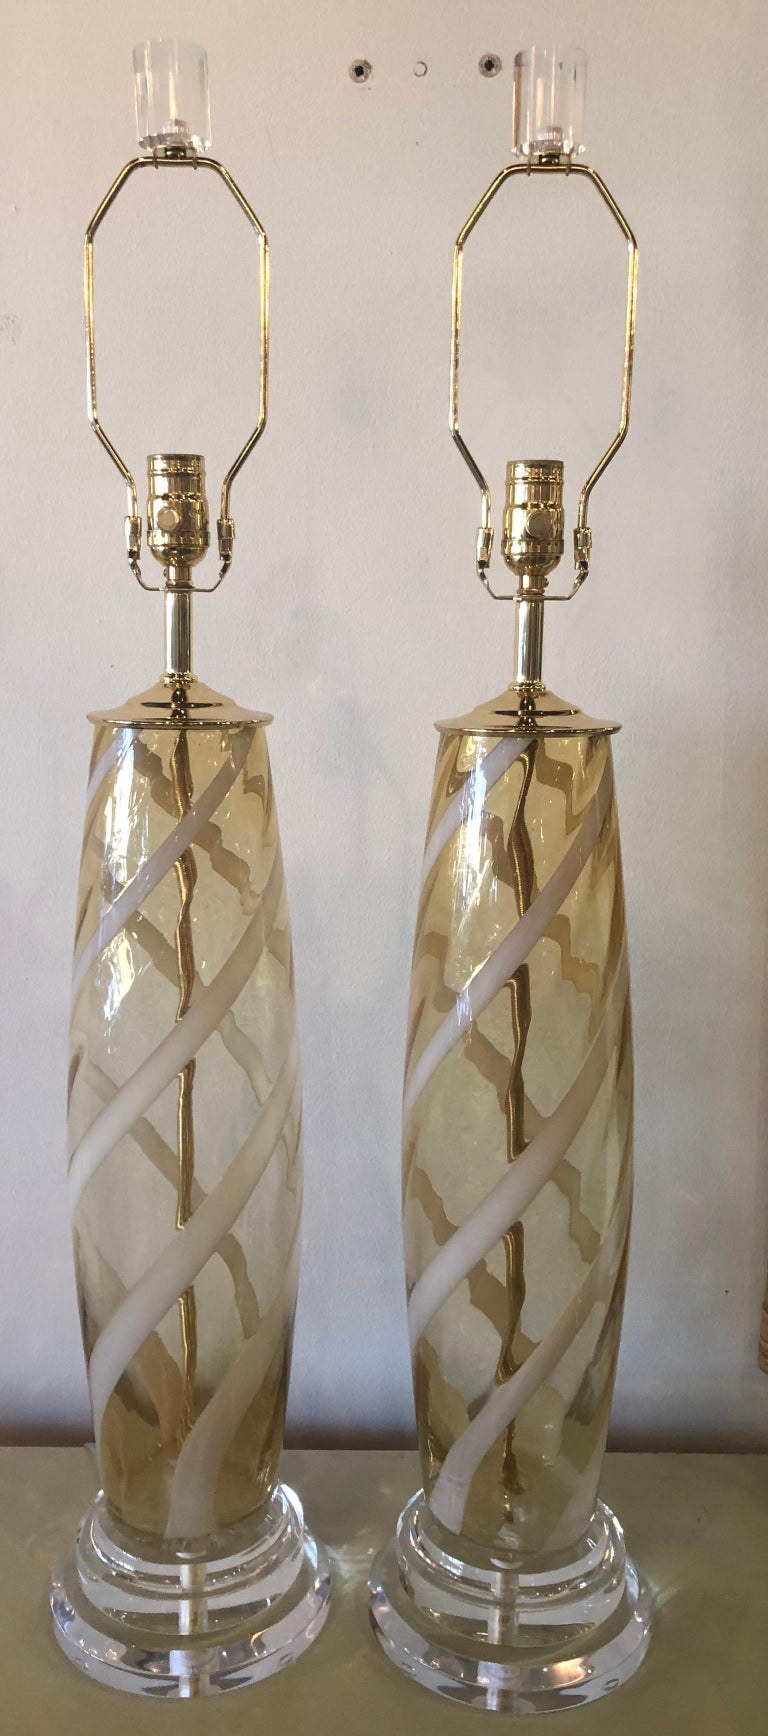 Vintage Italian glass Murano table lamps, pair. These have been newly rewired, new brass hardware, Lucite base and finials. Meticulously restored to perfection!